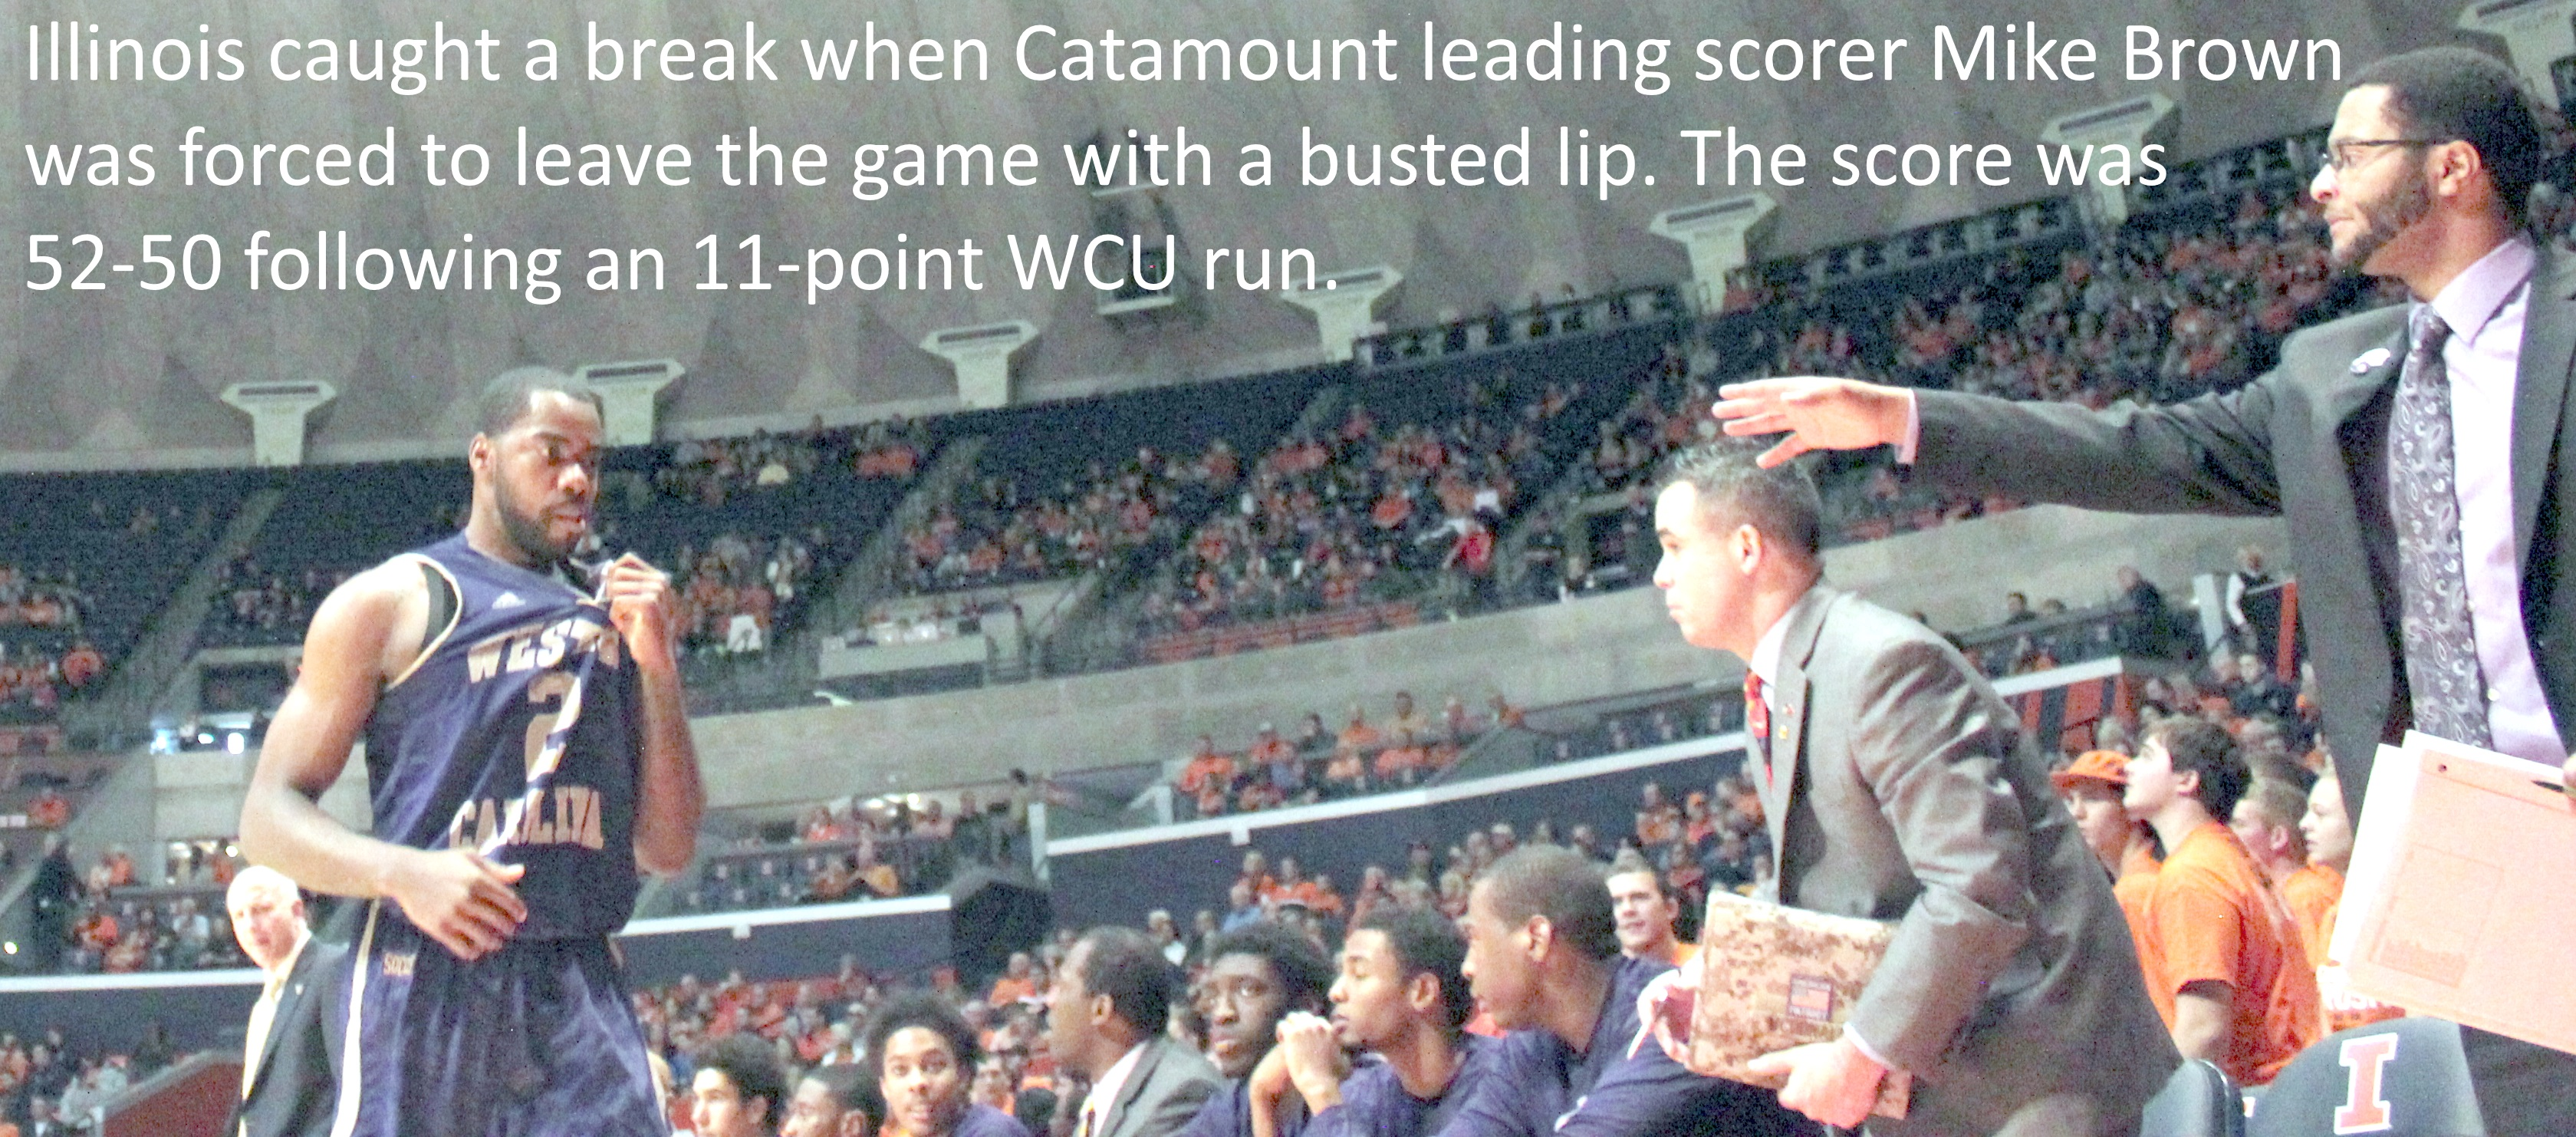 Catamount Mike Brown busted lip